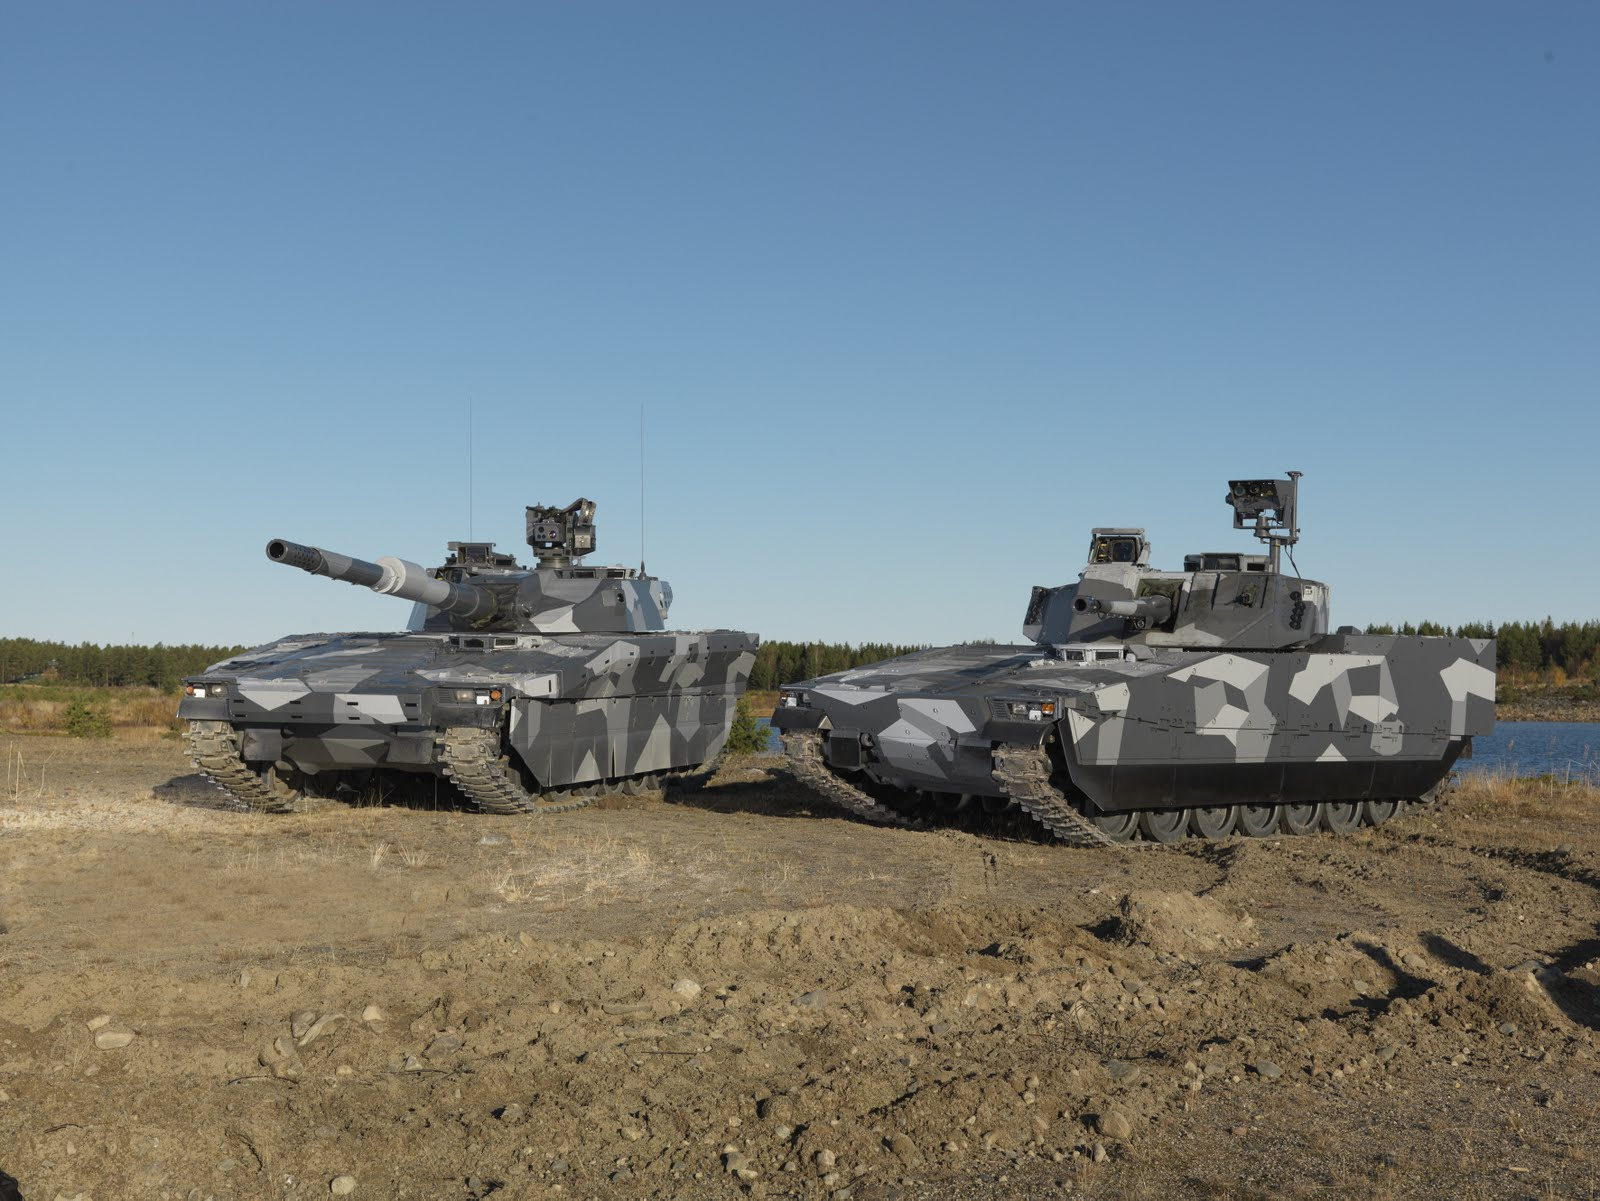 cv90120 image - tank lovers group